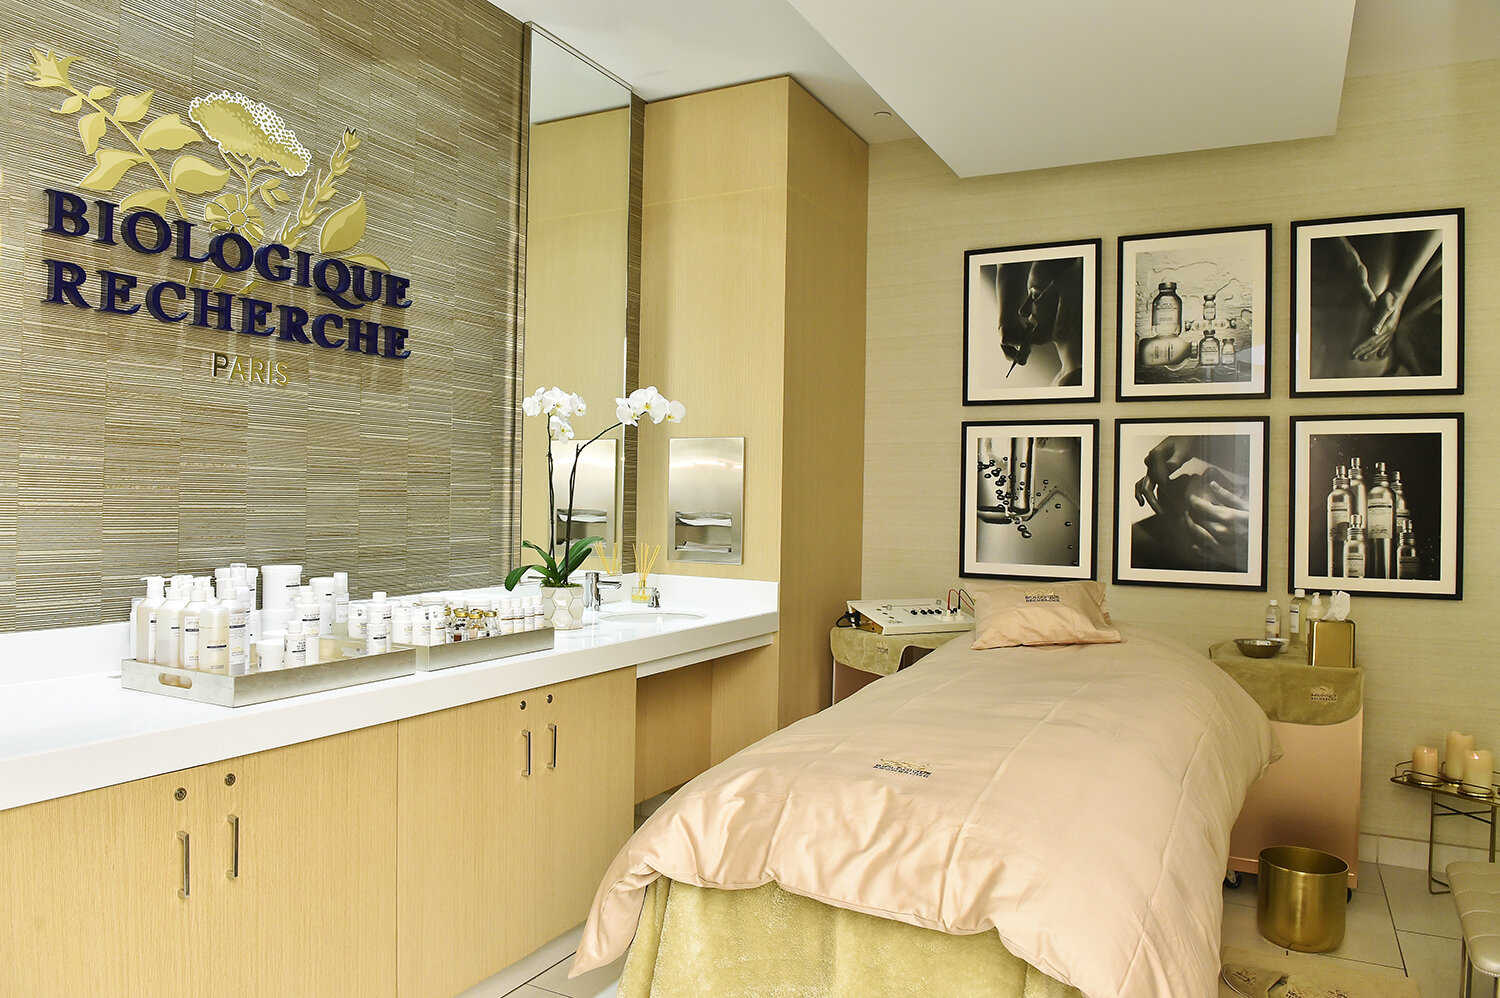 Neiman Marcus Beverly Hills has a new treatment Biologique Recherche room that will offer a selection of the brand's highly-customized, results-driven services.